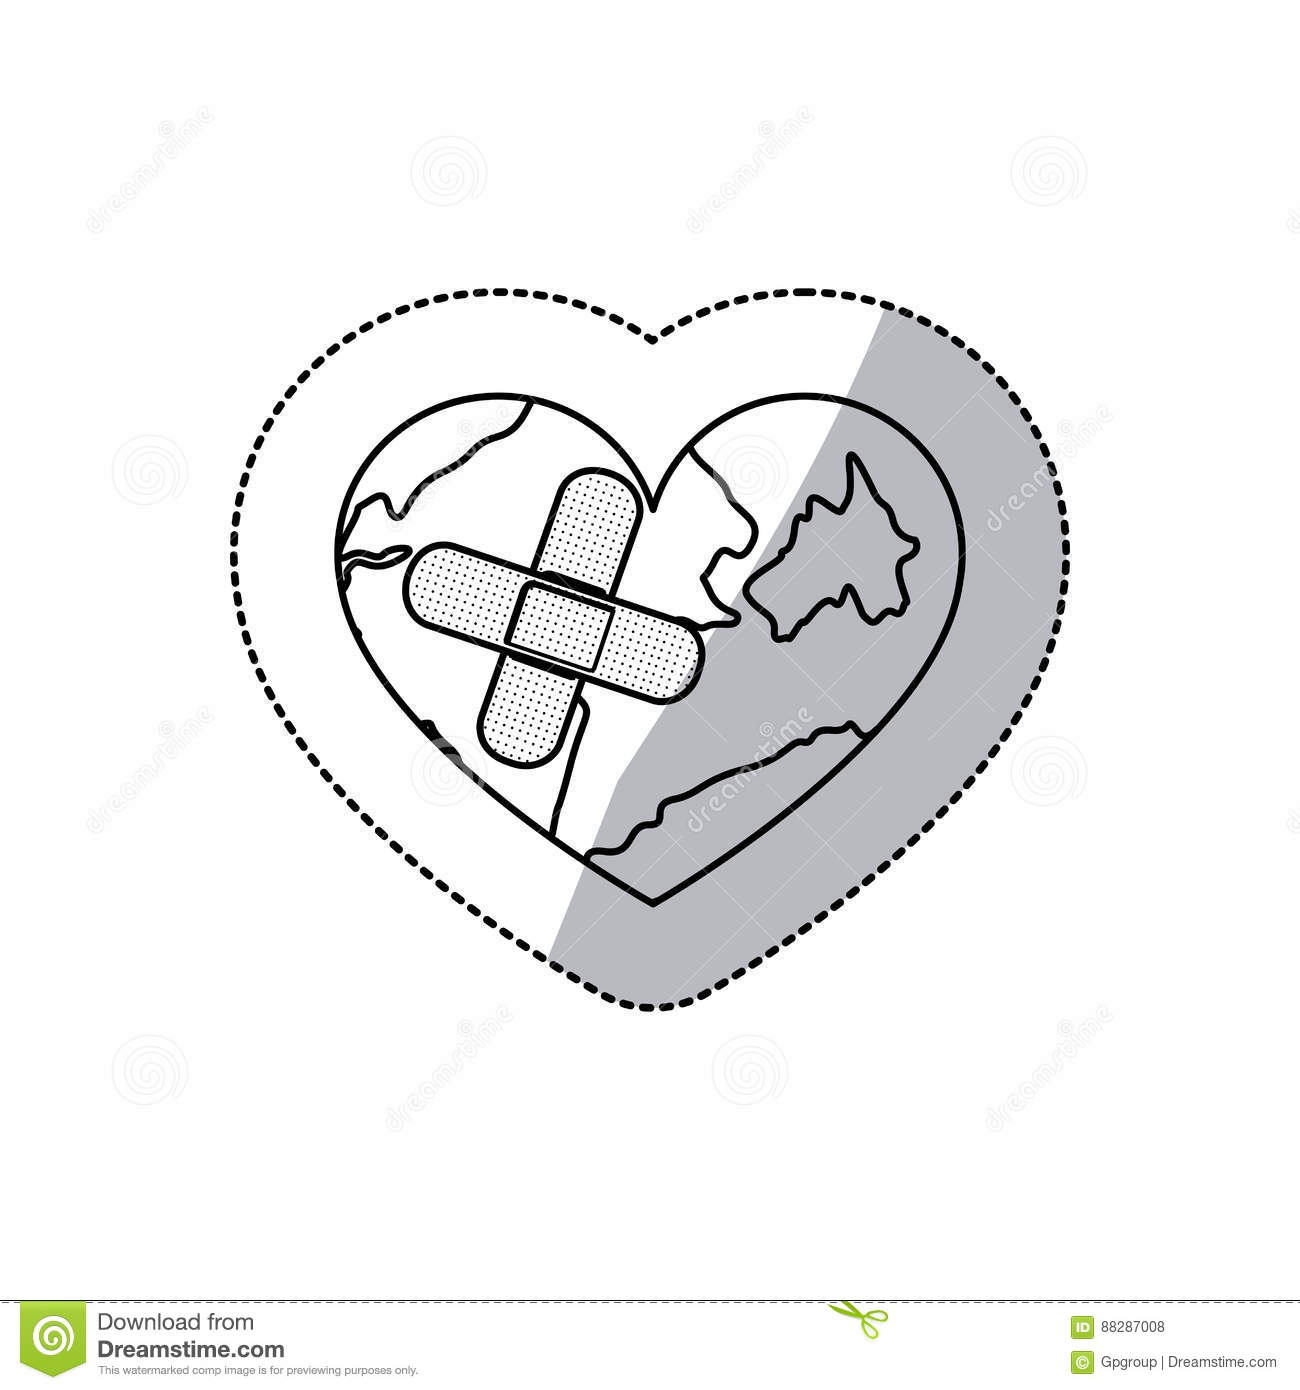 Contour Earth Planet Heart With Band Aid Icon Stock